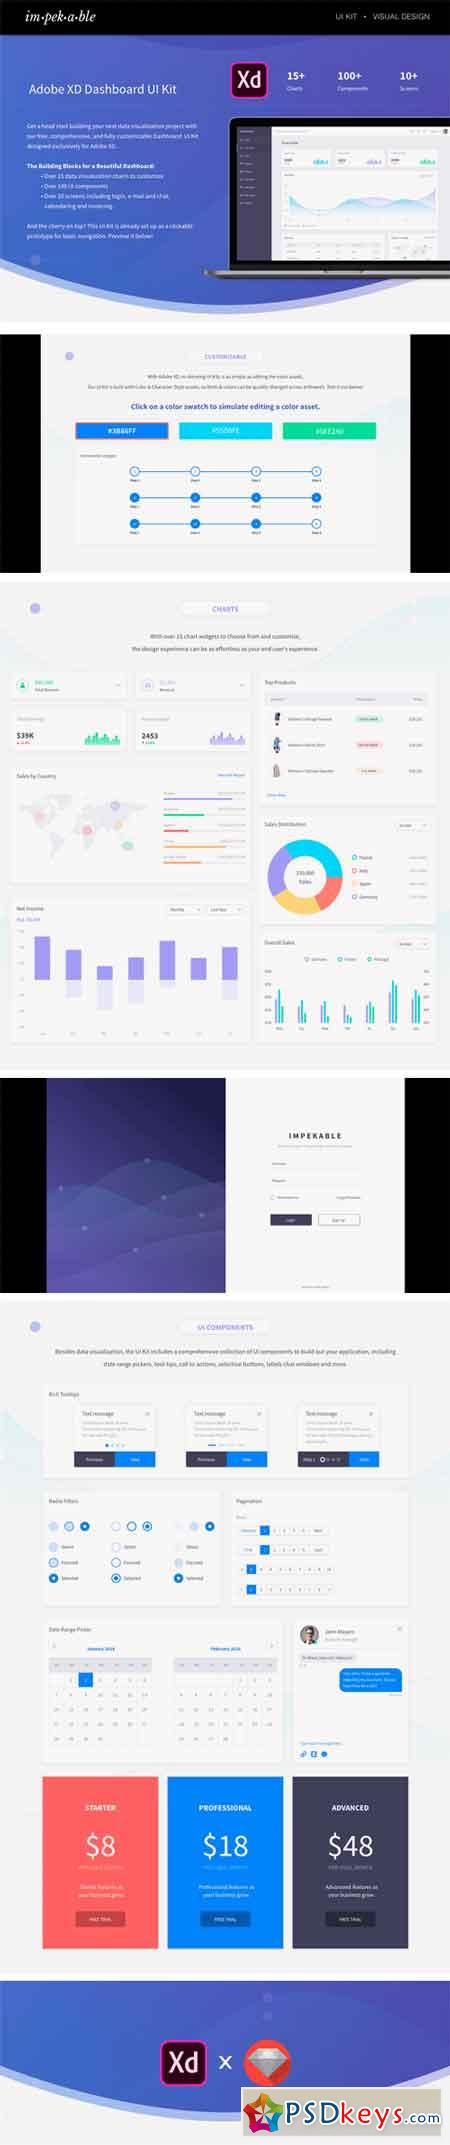 Dashboard UI Kit for Adobe XD 447250